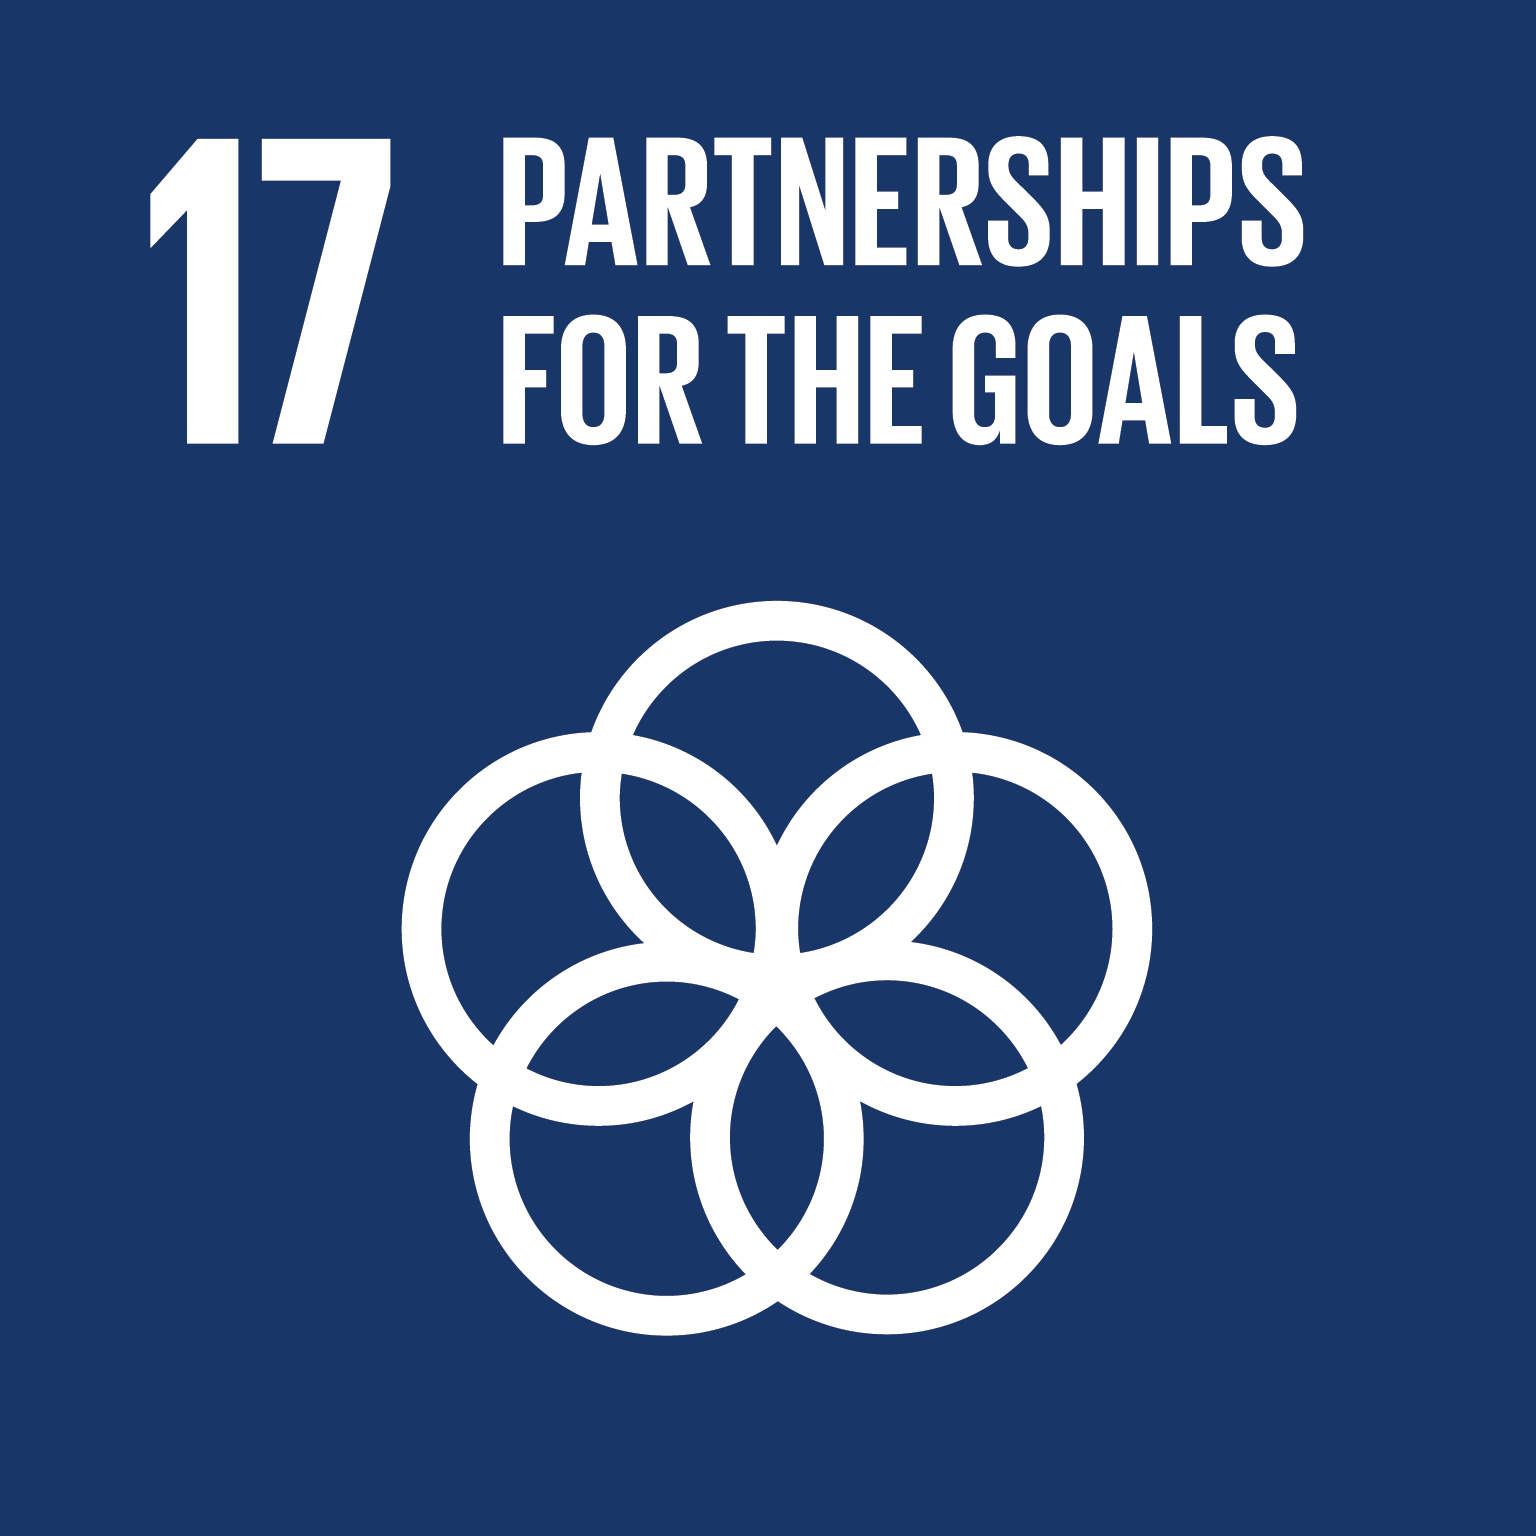 17 - Partnerships for the Goals